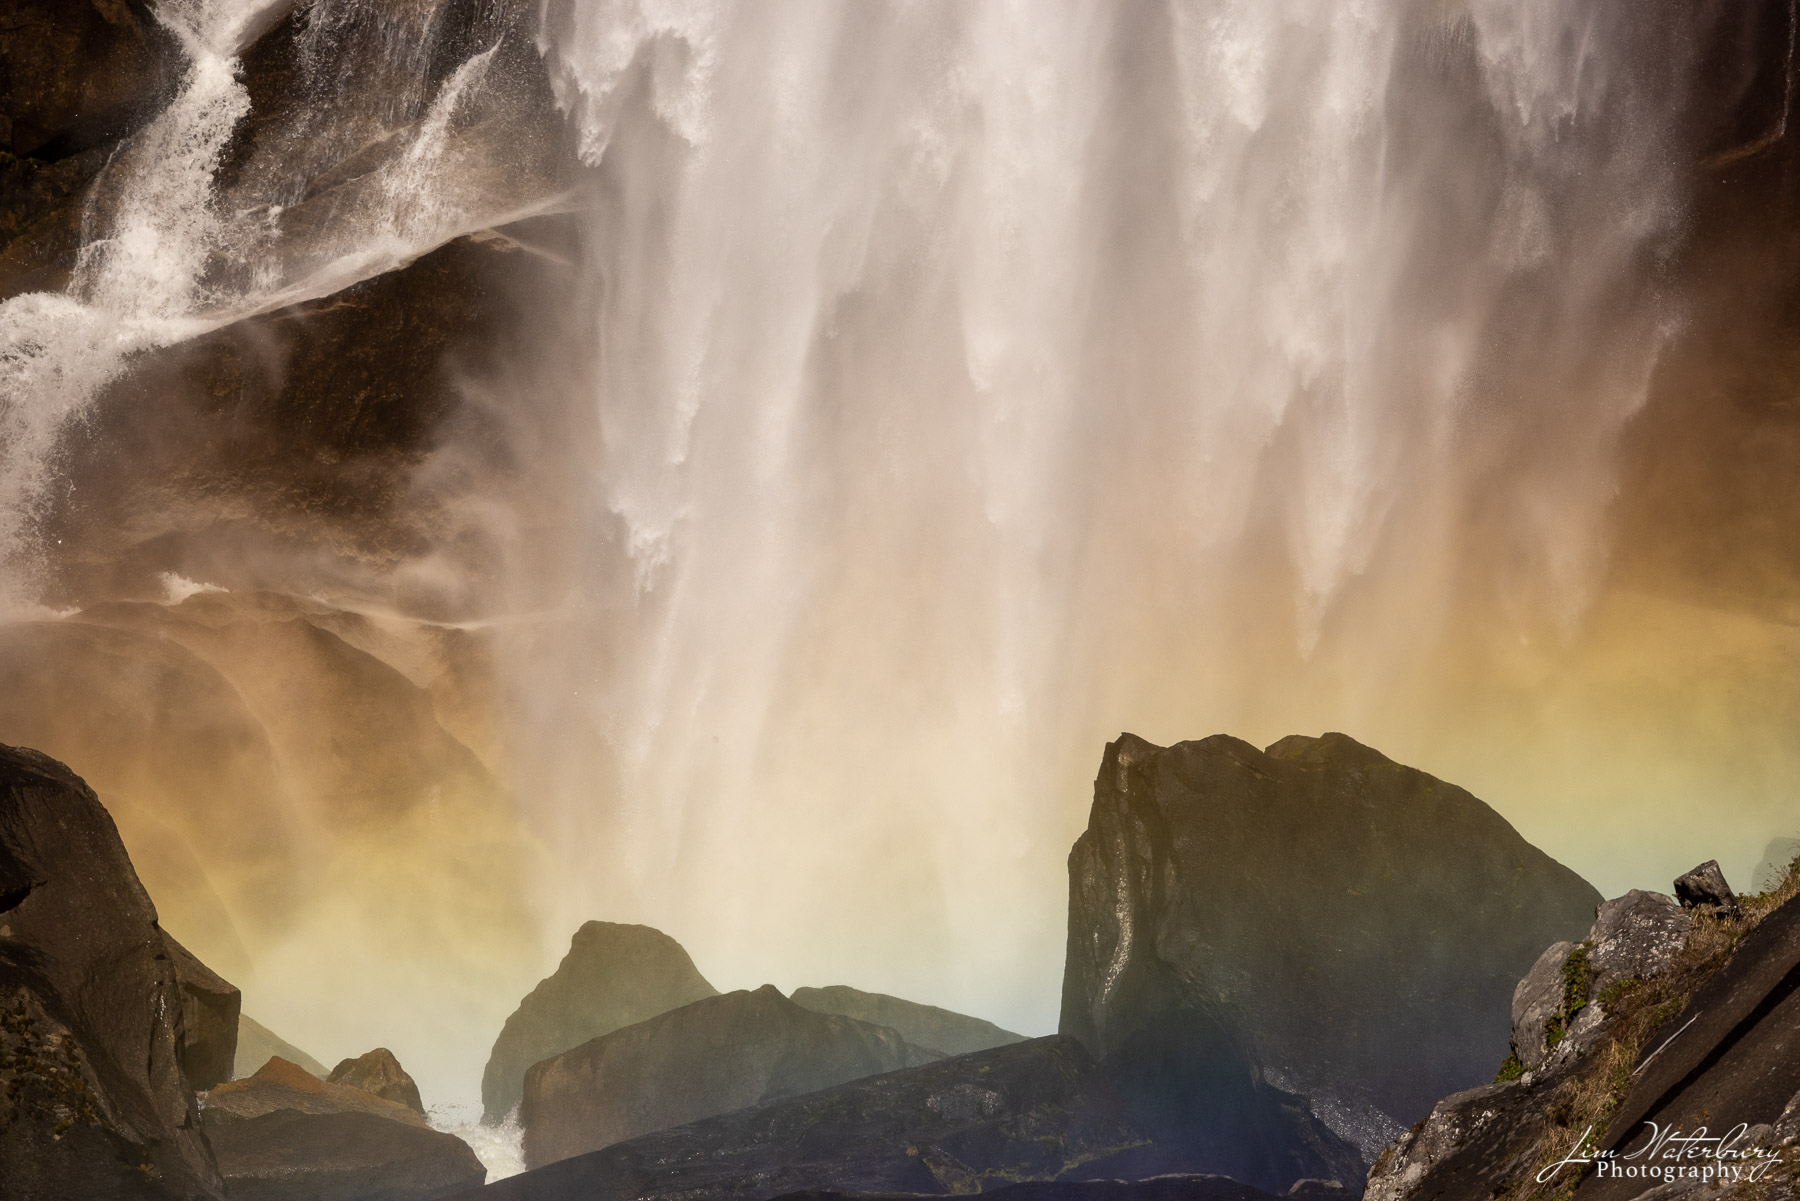 Detail of Vernal Falls, Yosemite Valley, photographed from a rock in the middle of the river, and showing a rainbow of colors...